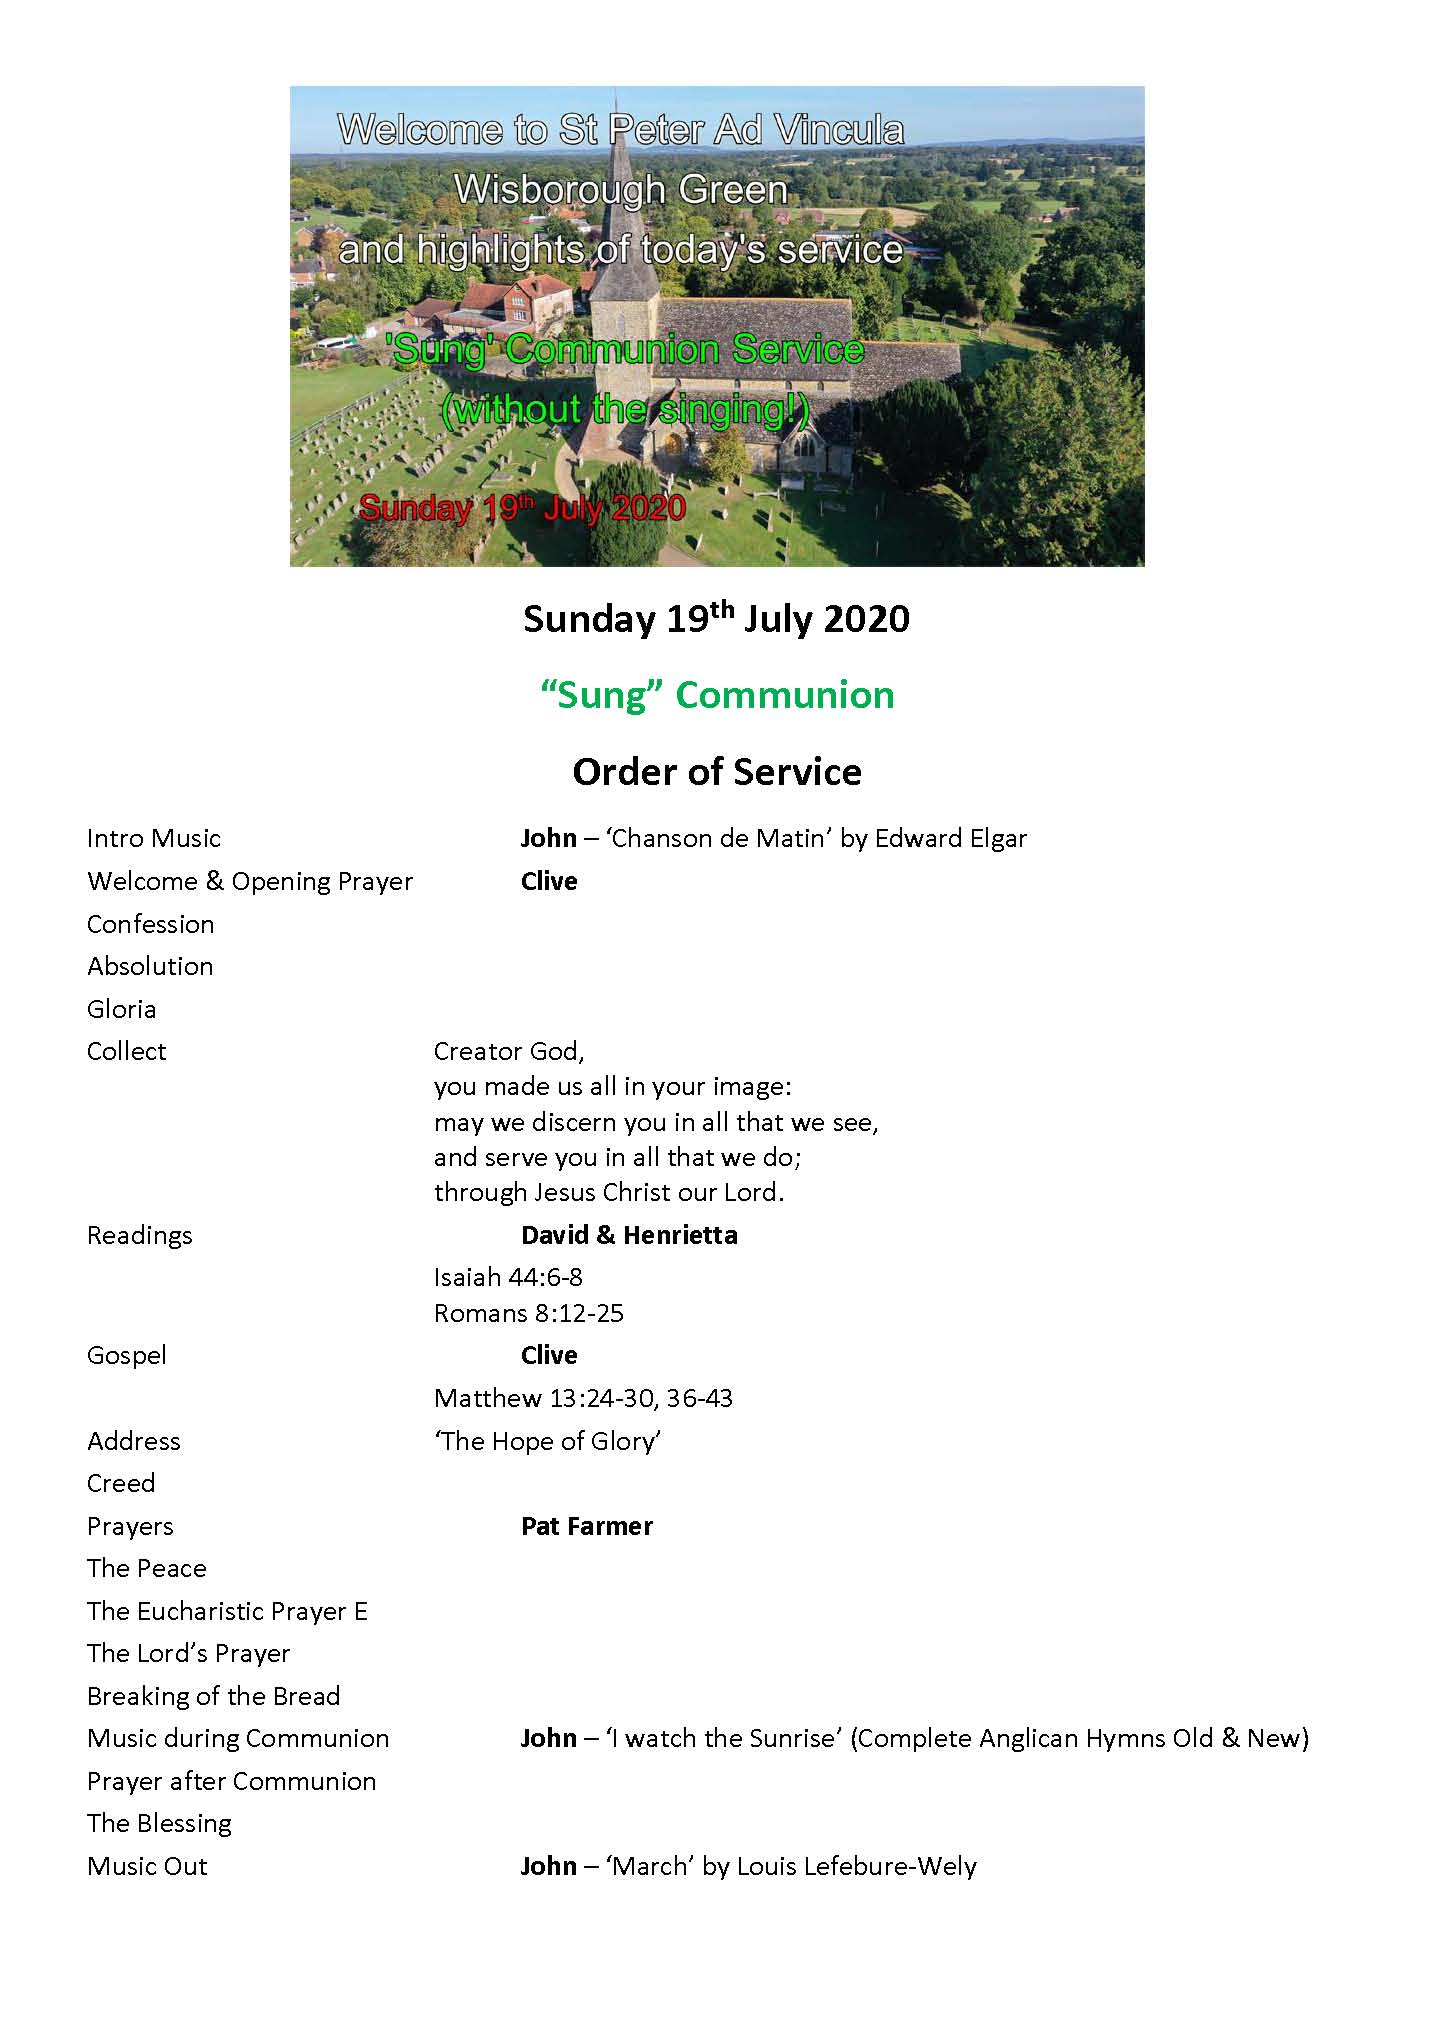 Order of Service 190720